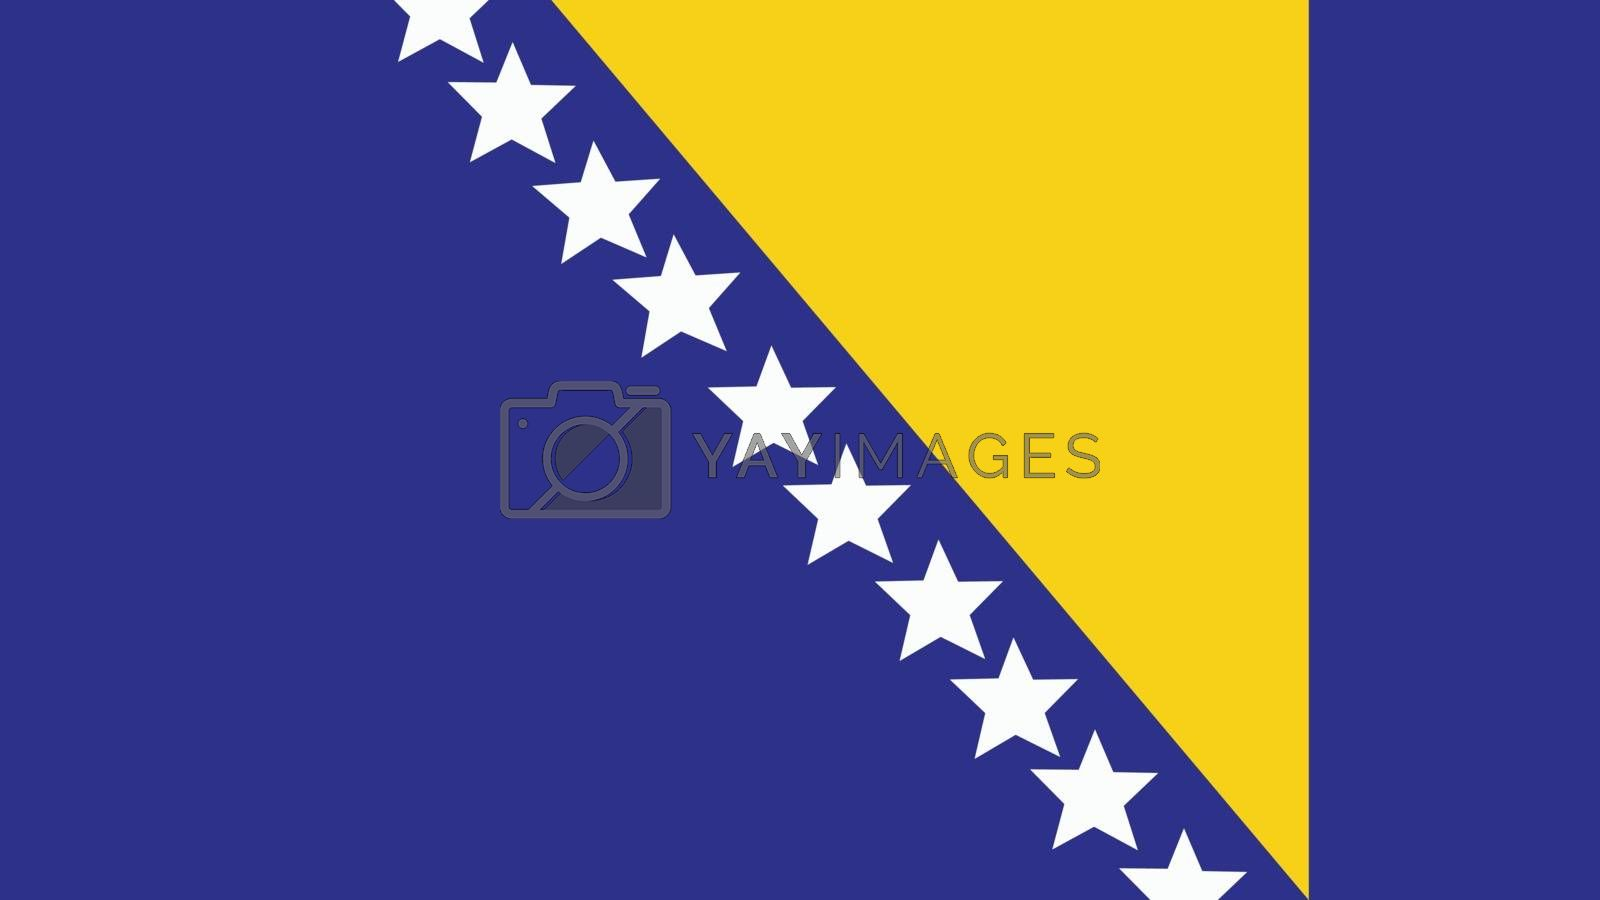 bosnia and herzegovina Flag for Independence Day and infographic Vector illustration.